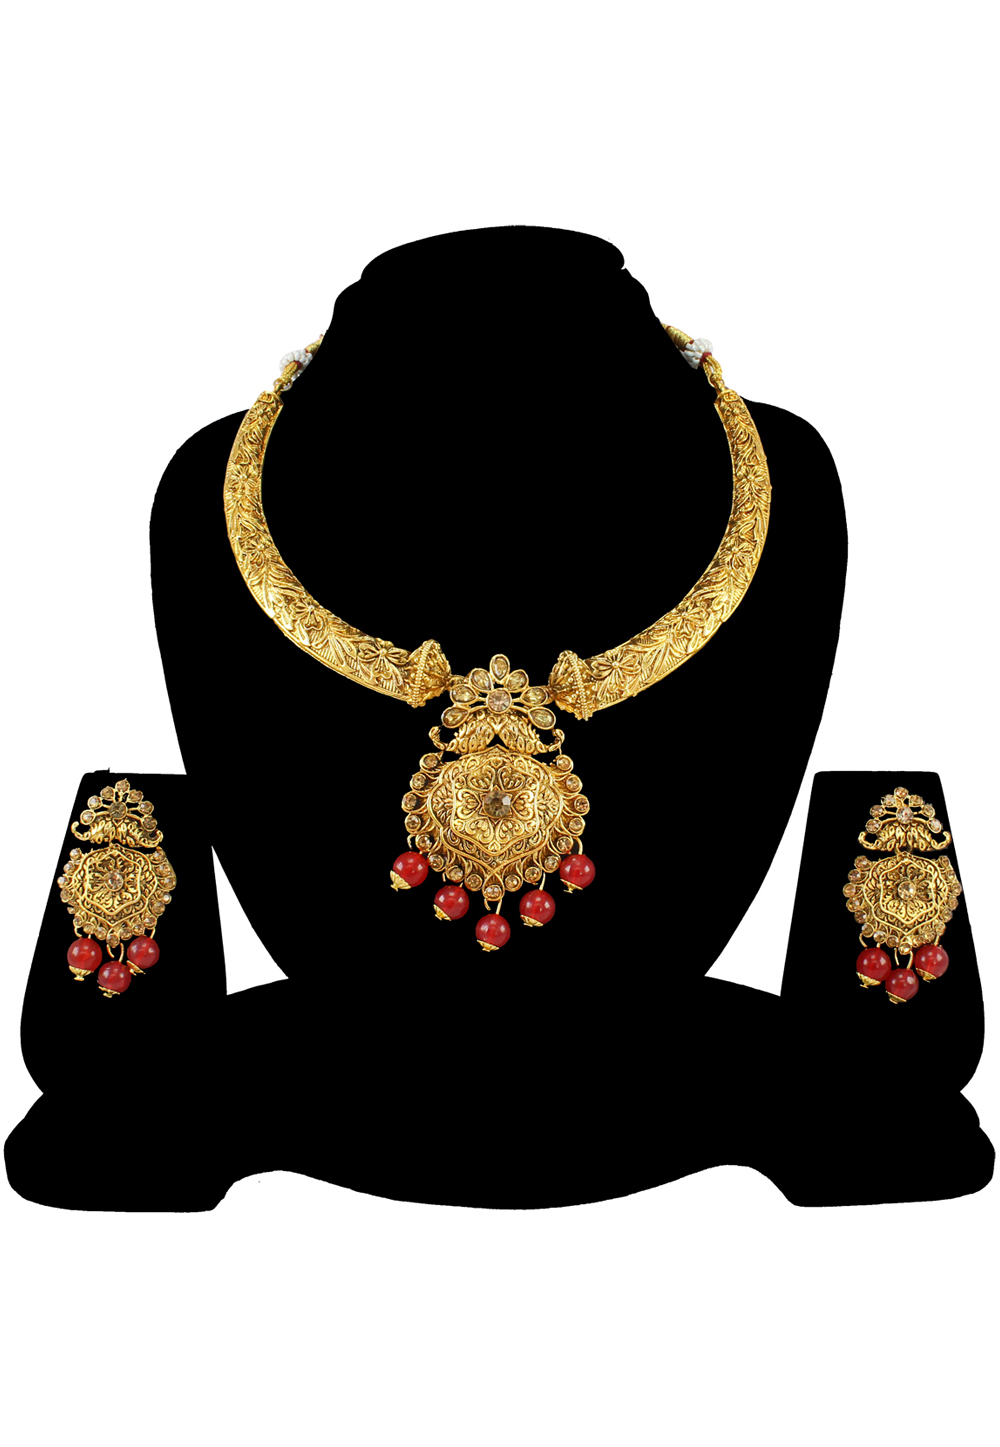 Maroon Alloy Austrian Diamond Necklace Set With Earrings 197190